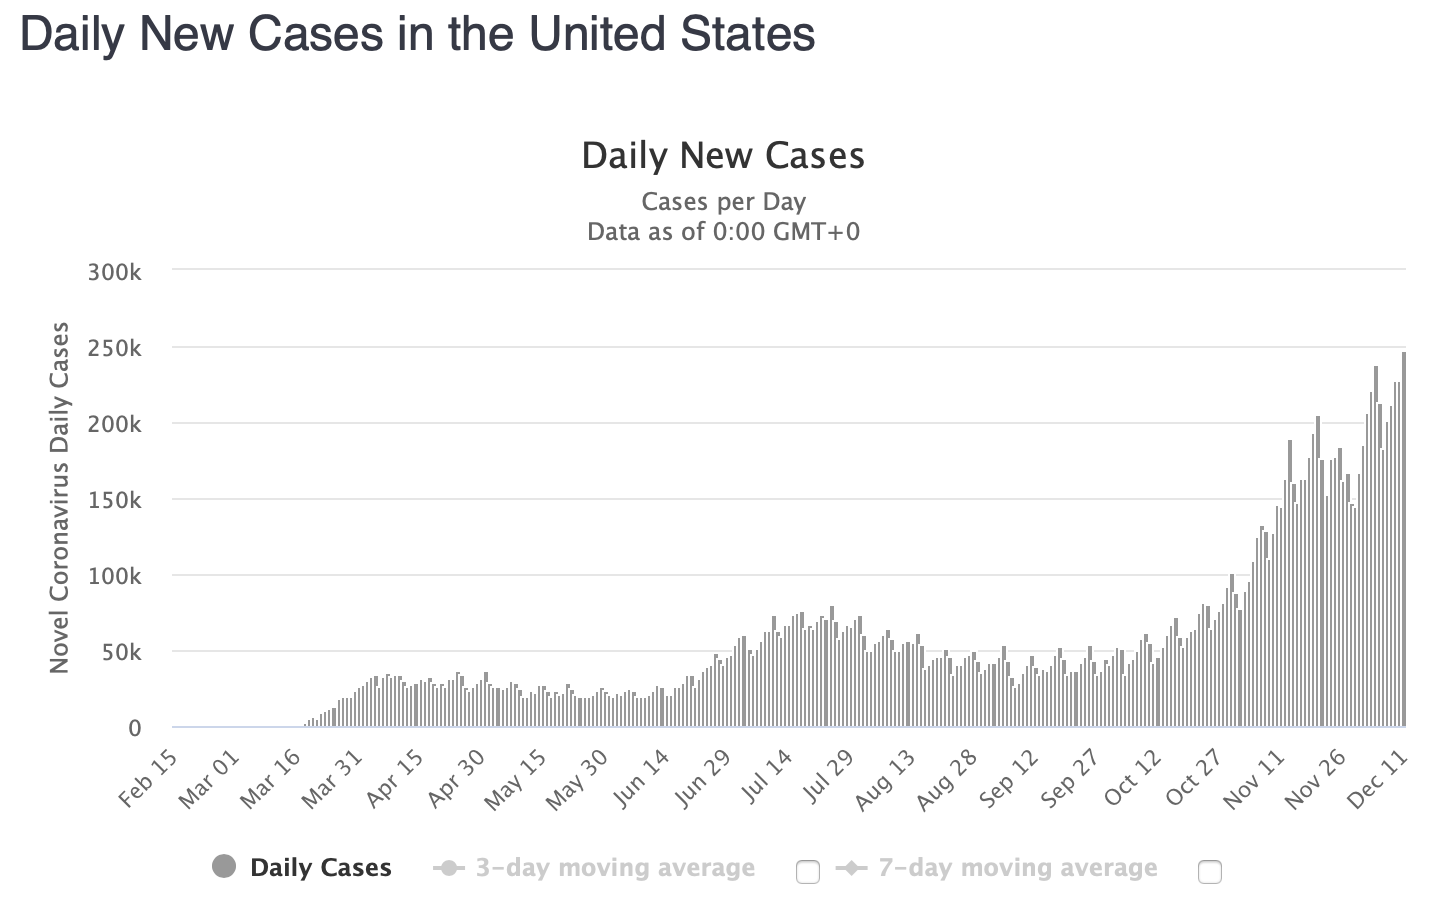 Worldometers Daily new cases in the USA up to December 11th